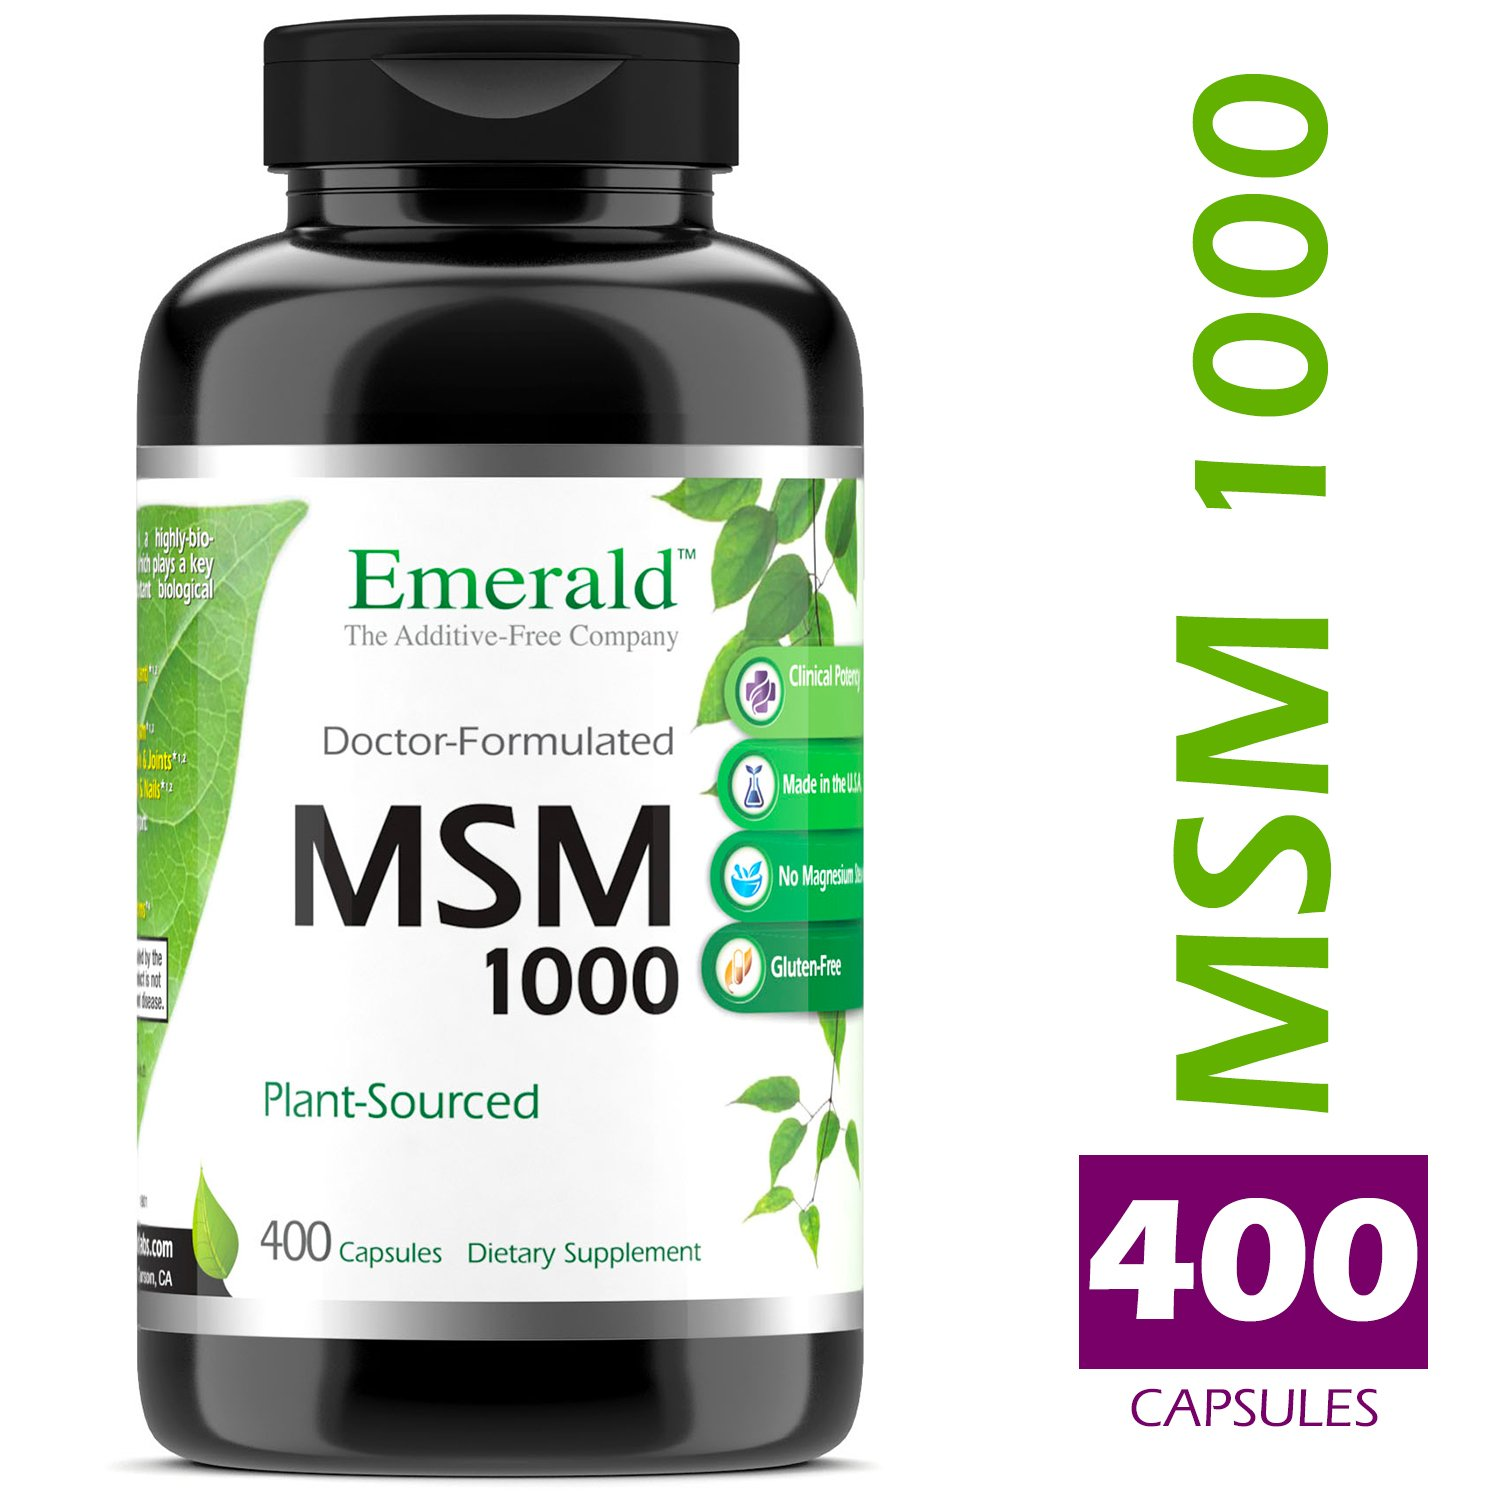 MSM 1,000 mg - Joint Support for Aches & Pains, Anti-Inflammatory, Stress Relief, Supports Digestive System, Allergy Relief - Emerald Laboratories (Ultra Botanicals) - 400 Capsules